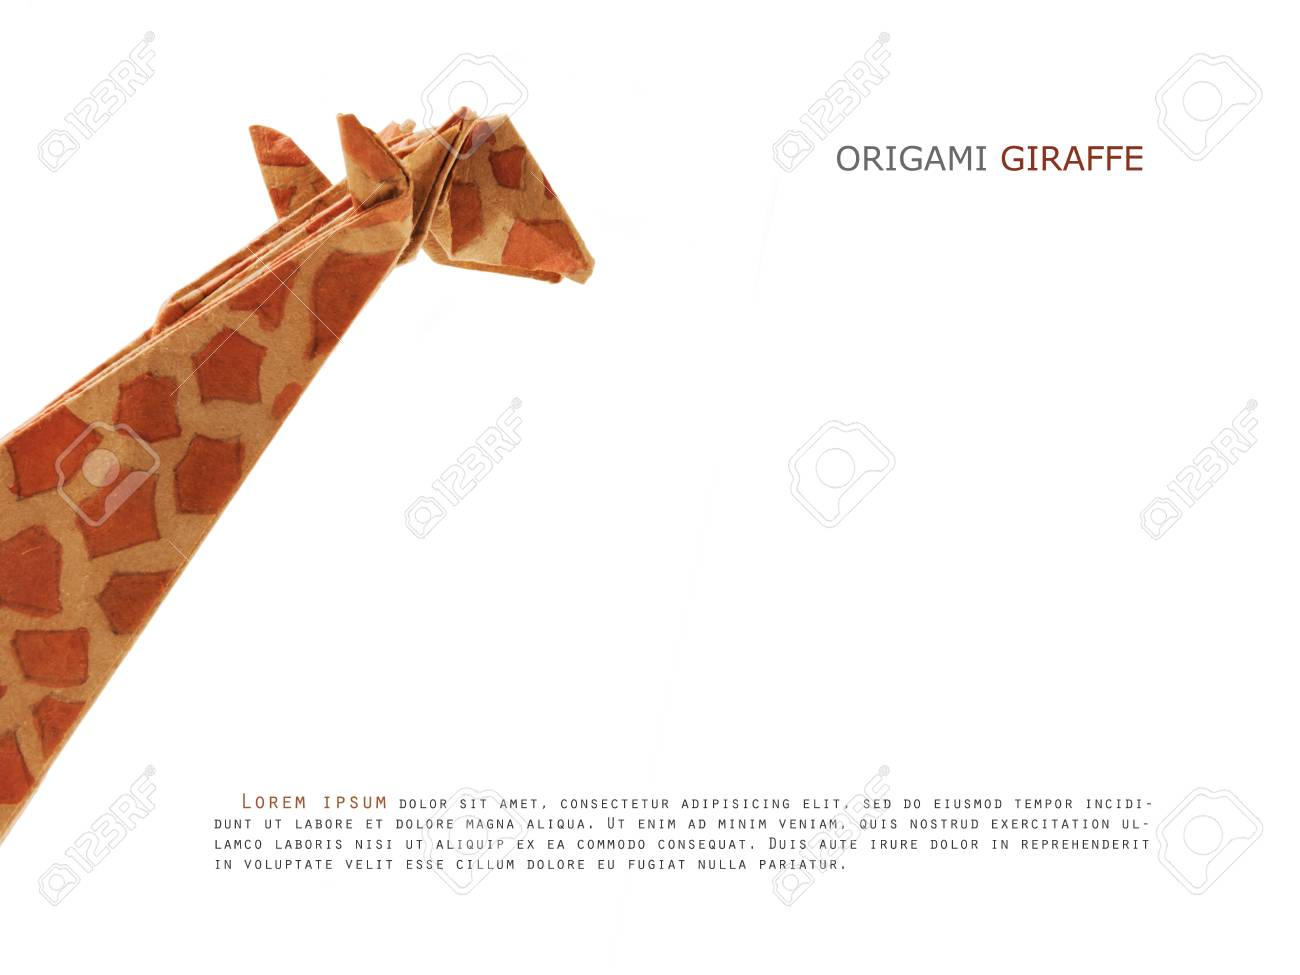 Origami paper giraffe on a white background Stock Photo - 20276599